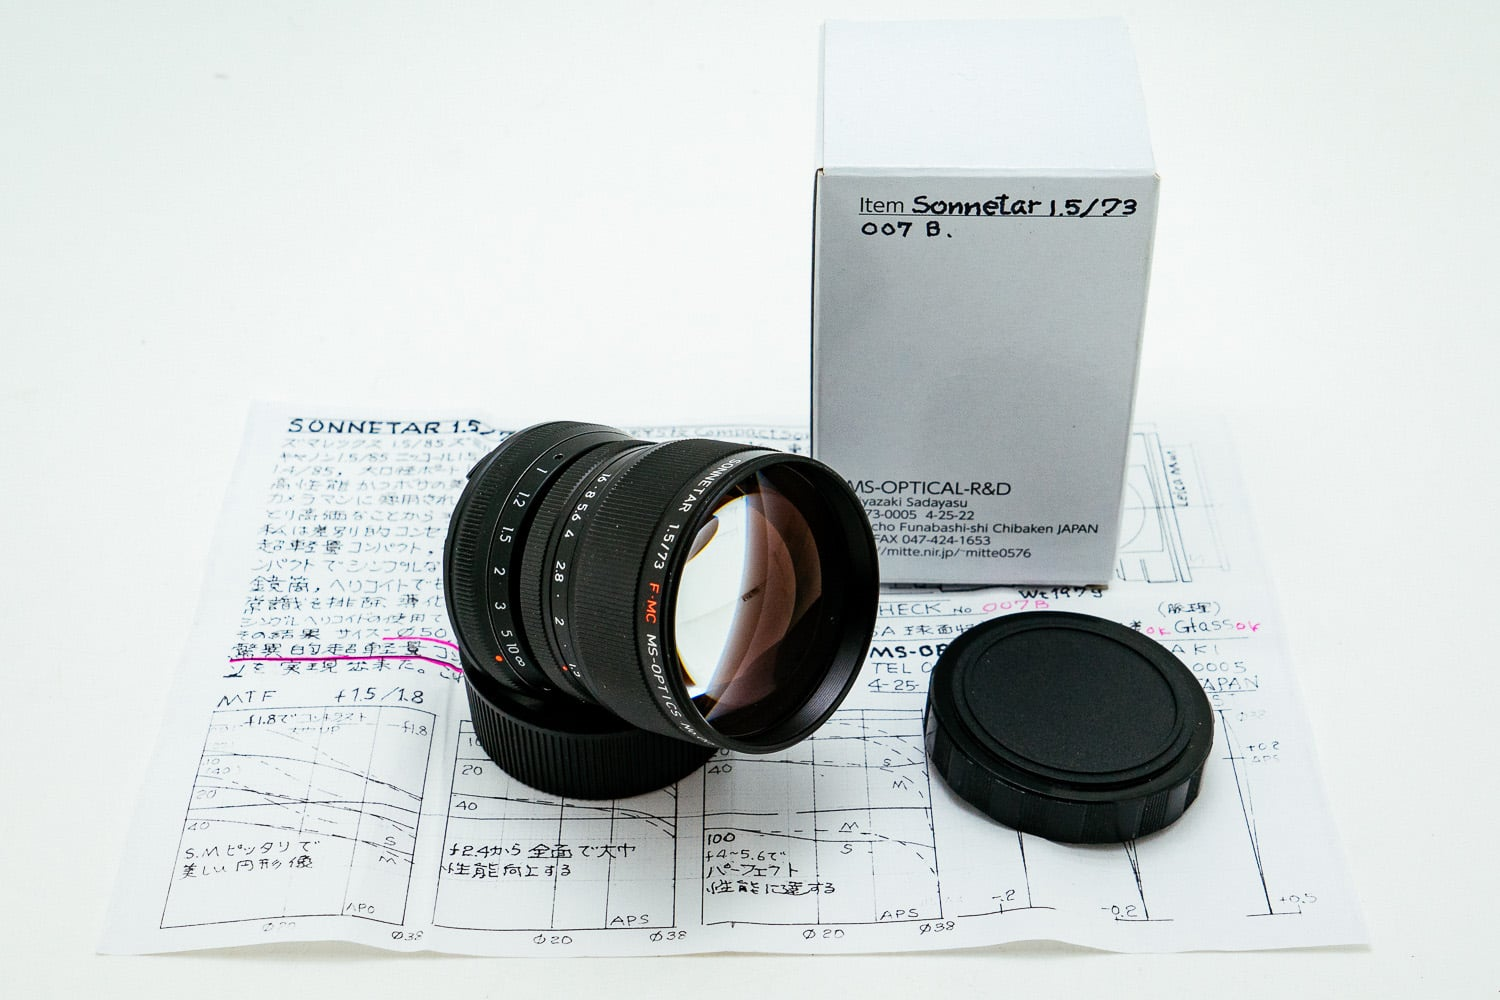 Camera Geekery: MS Optics Sonnetar 73mm f1.5 FMC